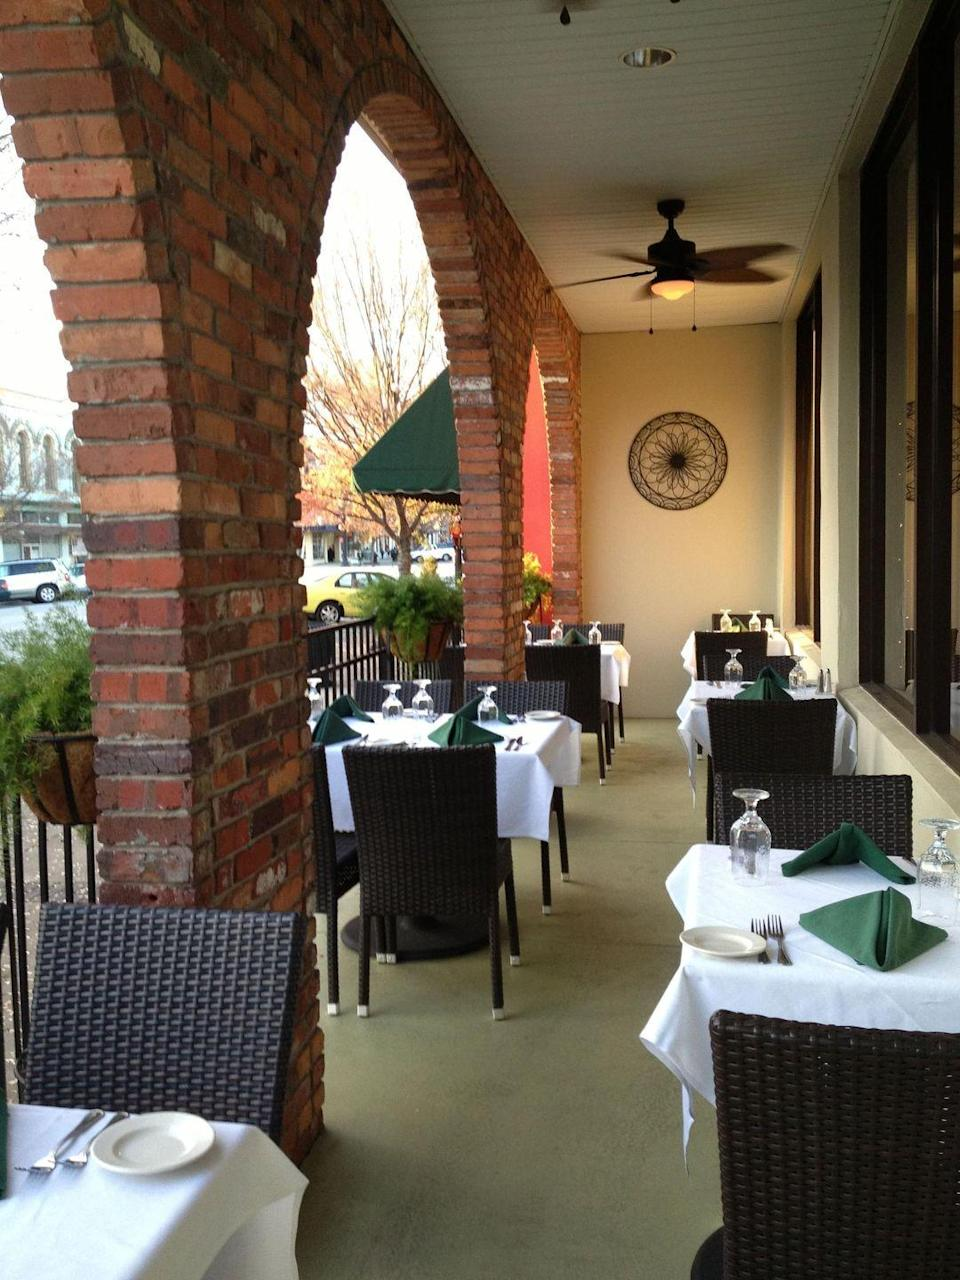 """<p>This <a href=""""https://www.tripadvisor.com/Restaurant_Review-g35310-d7130227-Reviews-The_Plaza_Restaurant_Oyster_Bar-Thomasville_Georgia.html"""" rel=""""nofollow noopener"""" target=""""_blank"""" data-ylk=""""slk:storied Southern spot"""" class=""""link rapid-noclick-resp"""">storied Southern spot</a> recently celebrated its 100th anniversary in operation. It started up in 1916 and is still going strong, offering cocktails, lunch, and dinner service and homemade desserts—including their famous homemade pies—to Thomasville<span class=""""redactor-invisible-space""""> residents.</span></p>"""